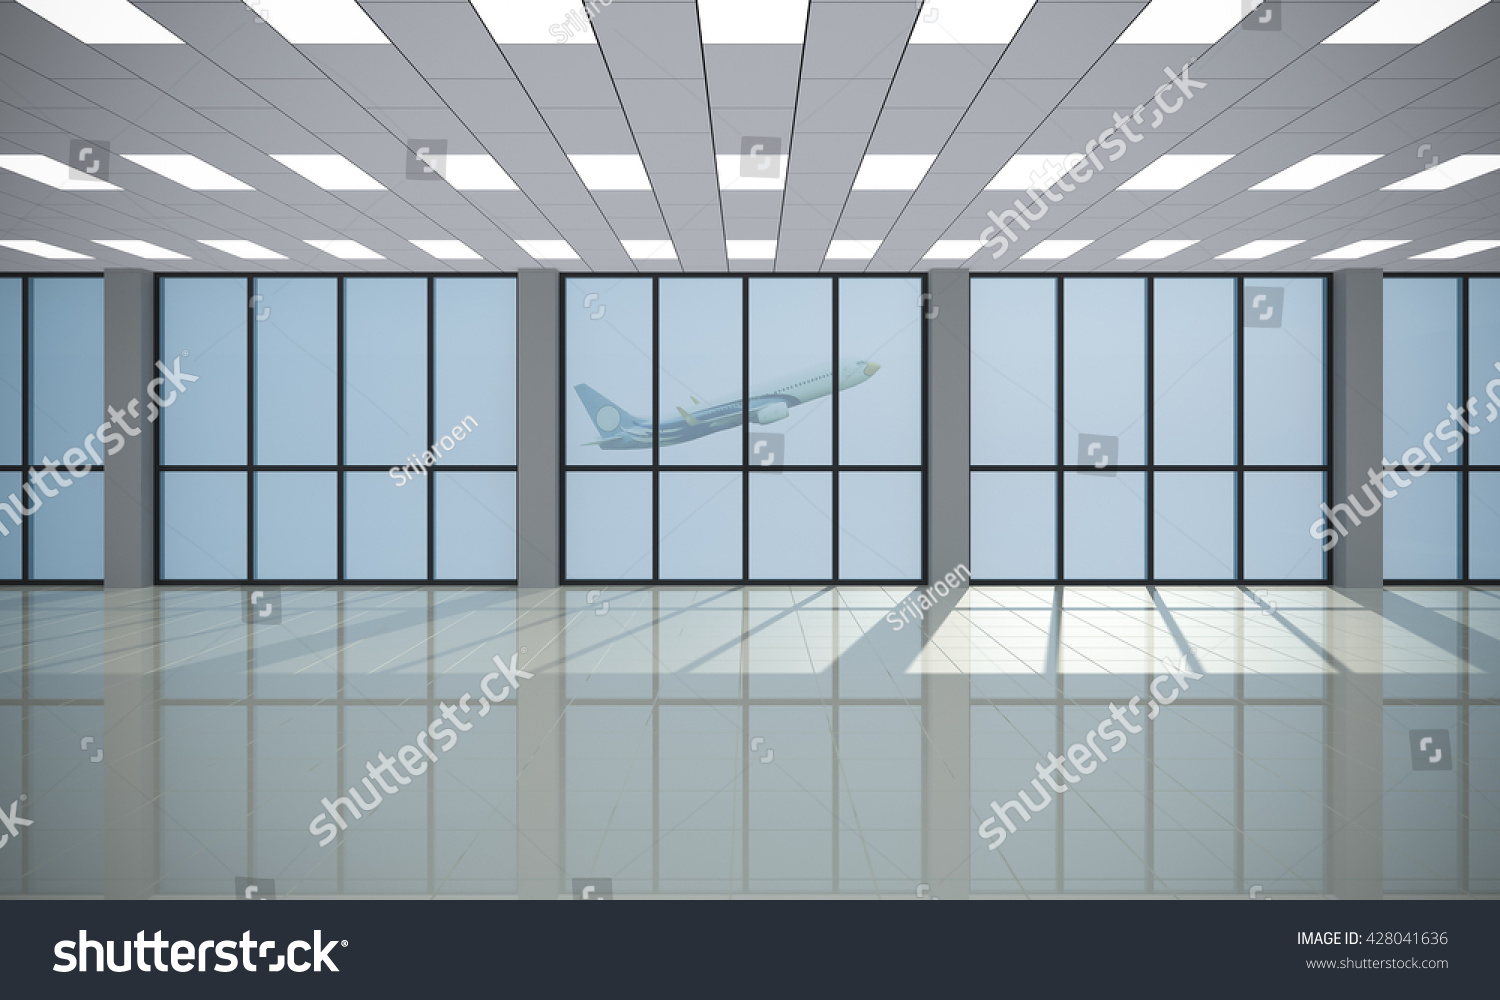 Interior glass curtain wall - Interior Glass Curtain Wall 3d Rendering Interior View Looking Out Toward To Empty Office Lobby